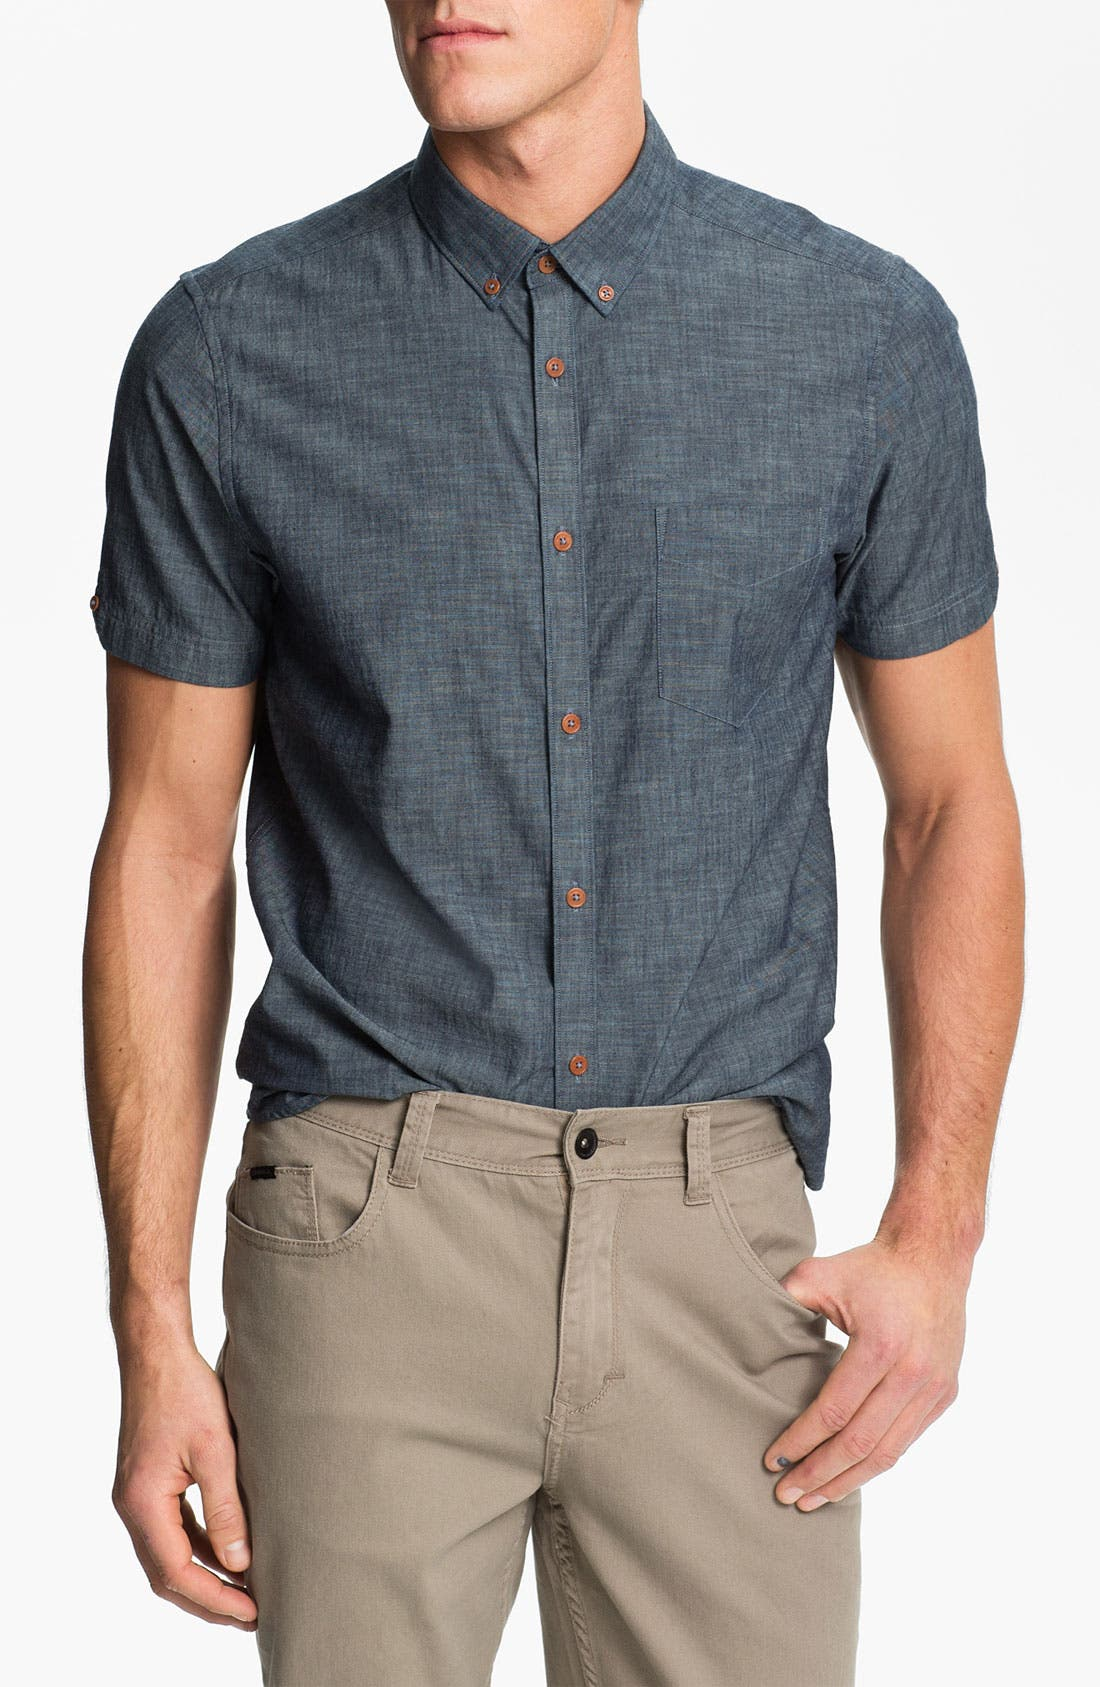 Alternate Image 1 Selected - Ben Sherman Short Sleeve Chambray Shirt